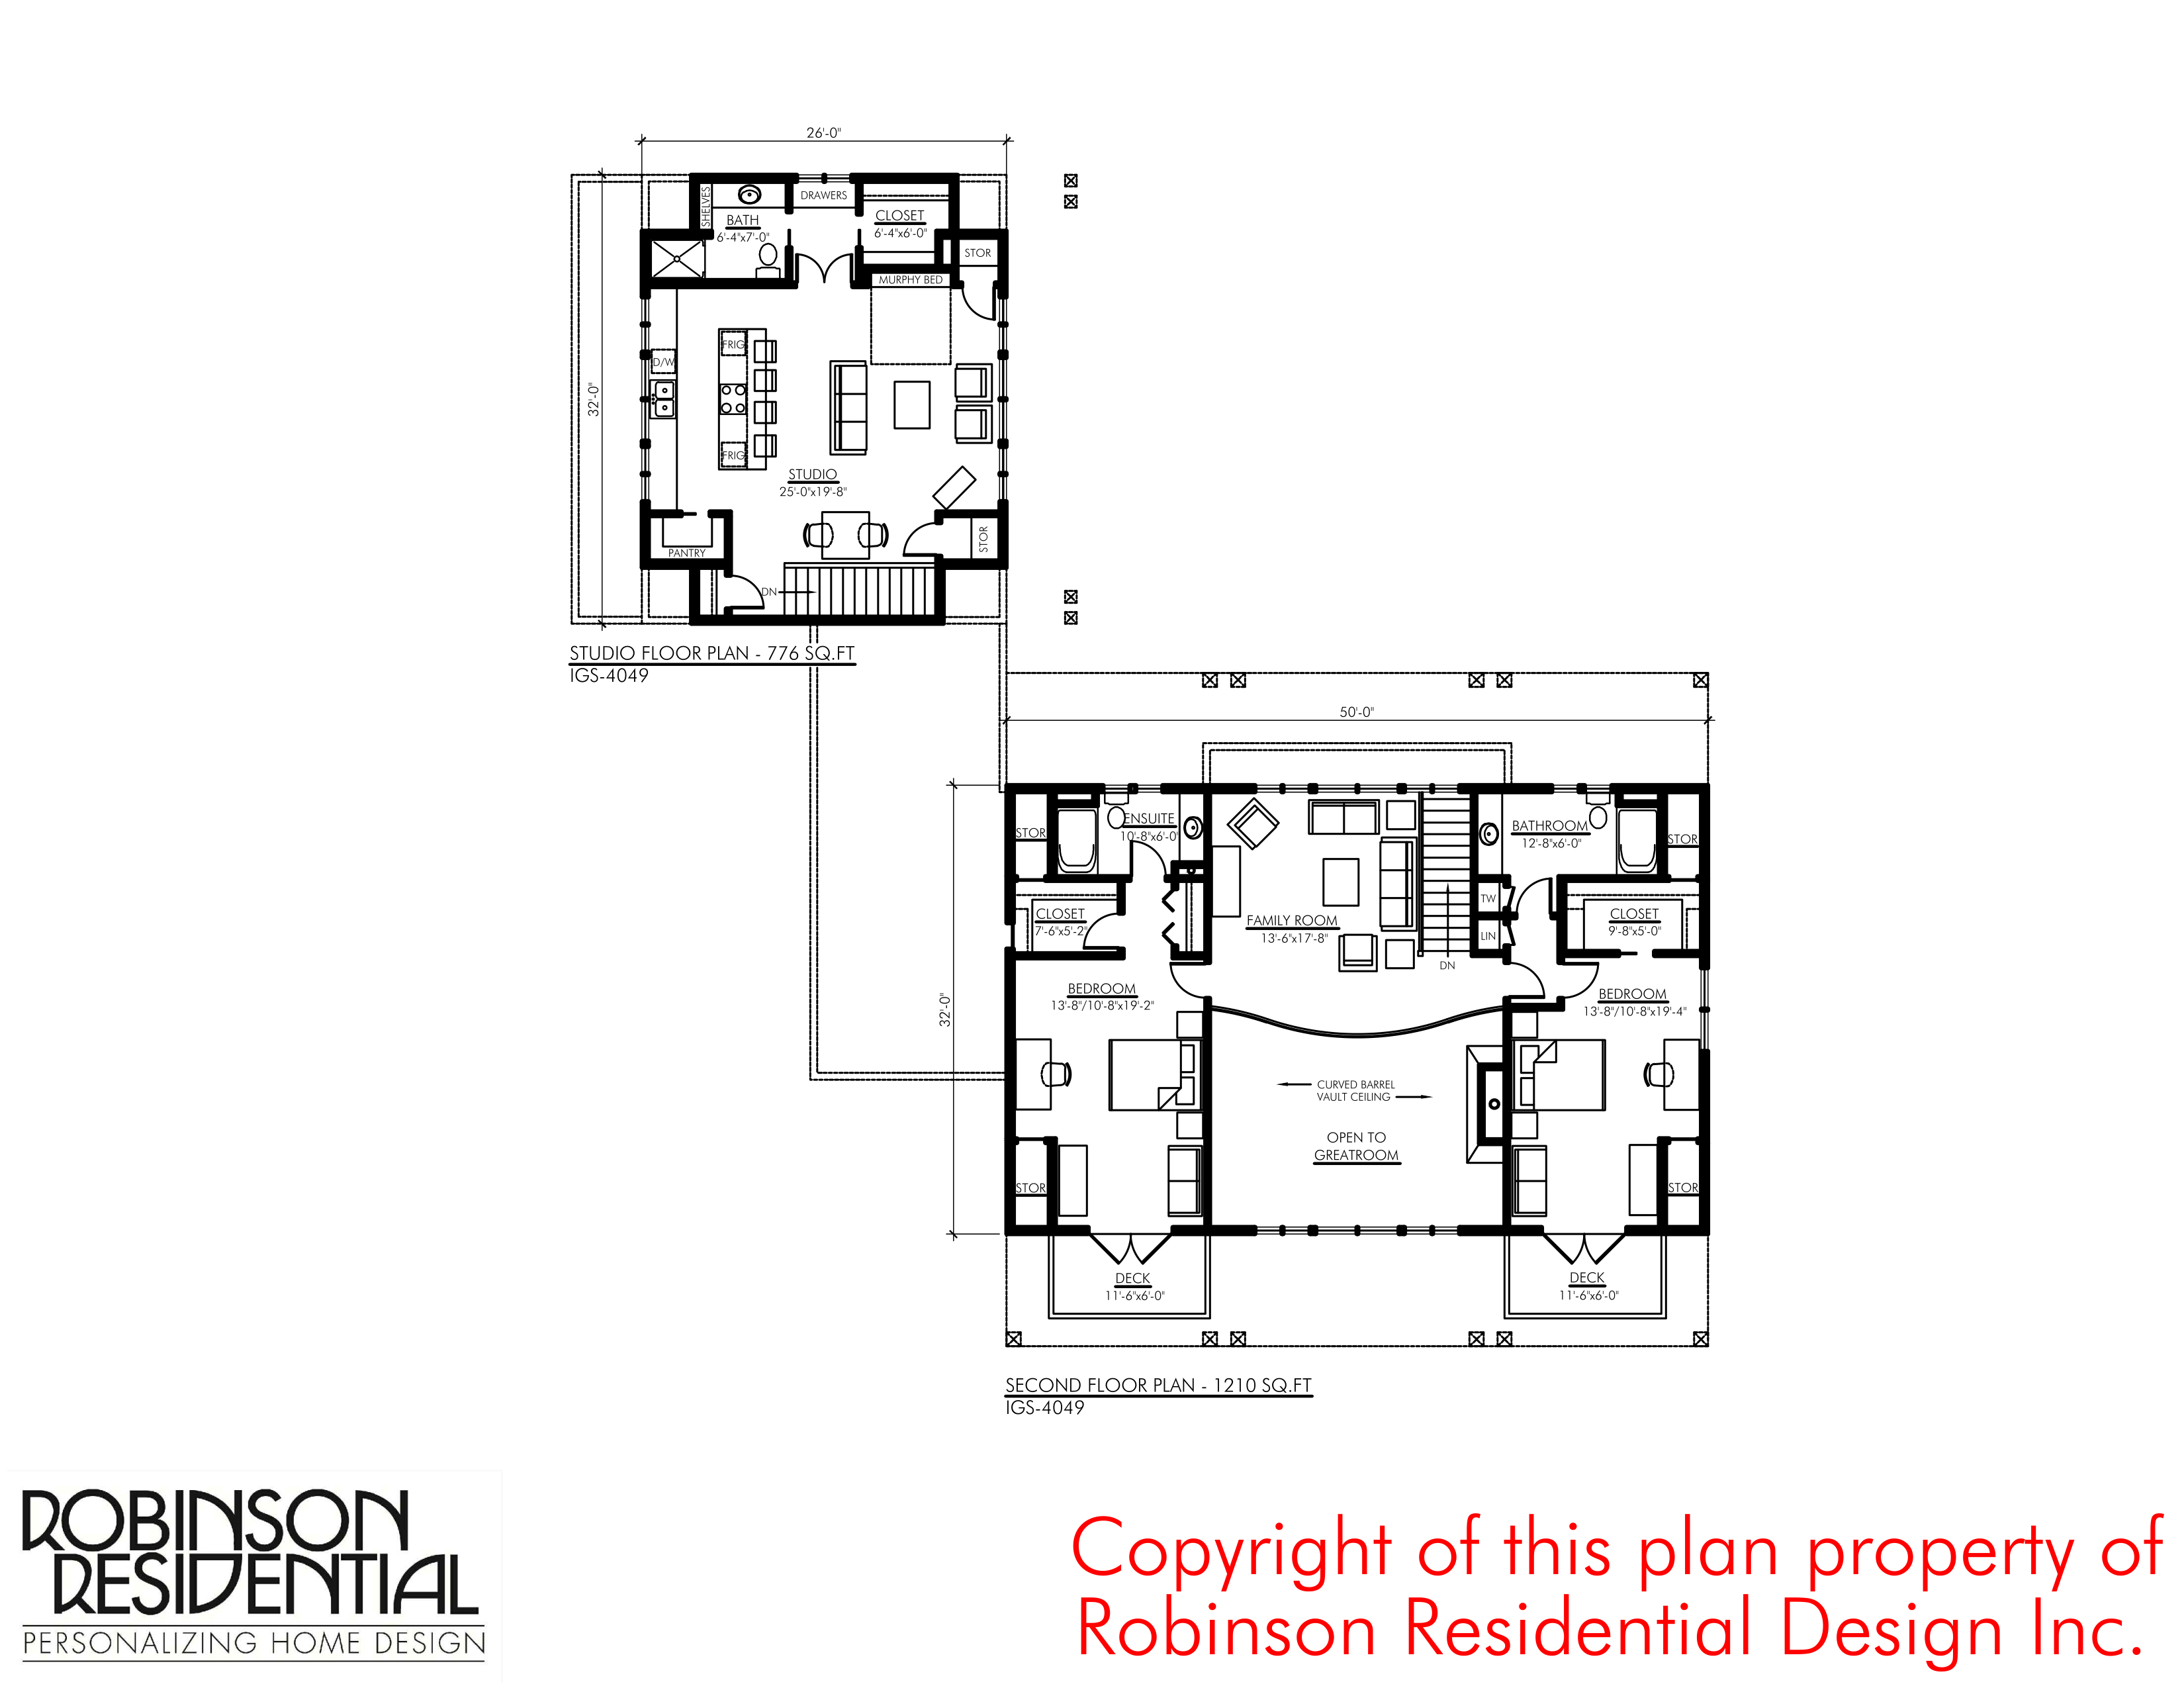 Craftsman IGS-4049 - Robinson Plans on general home designs, rustic home designs, vernacular home designs, bungalow home designs, carriage house home designs, stone home designs, traditional home designs, modern home designs, mission home designs, farmhouse home designs, wright home designs, mediterranean home designs, century home designs, artisan home designs, three story home designs, four square home designs, territorial home designs, linear home designs, small home designs, art deco home designs,